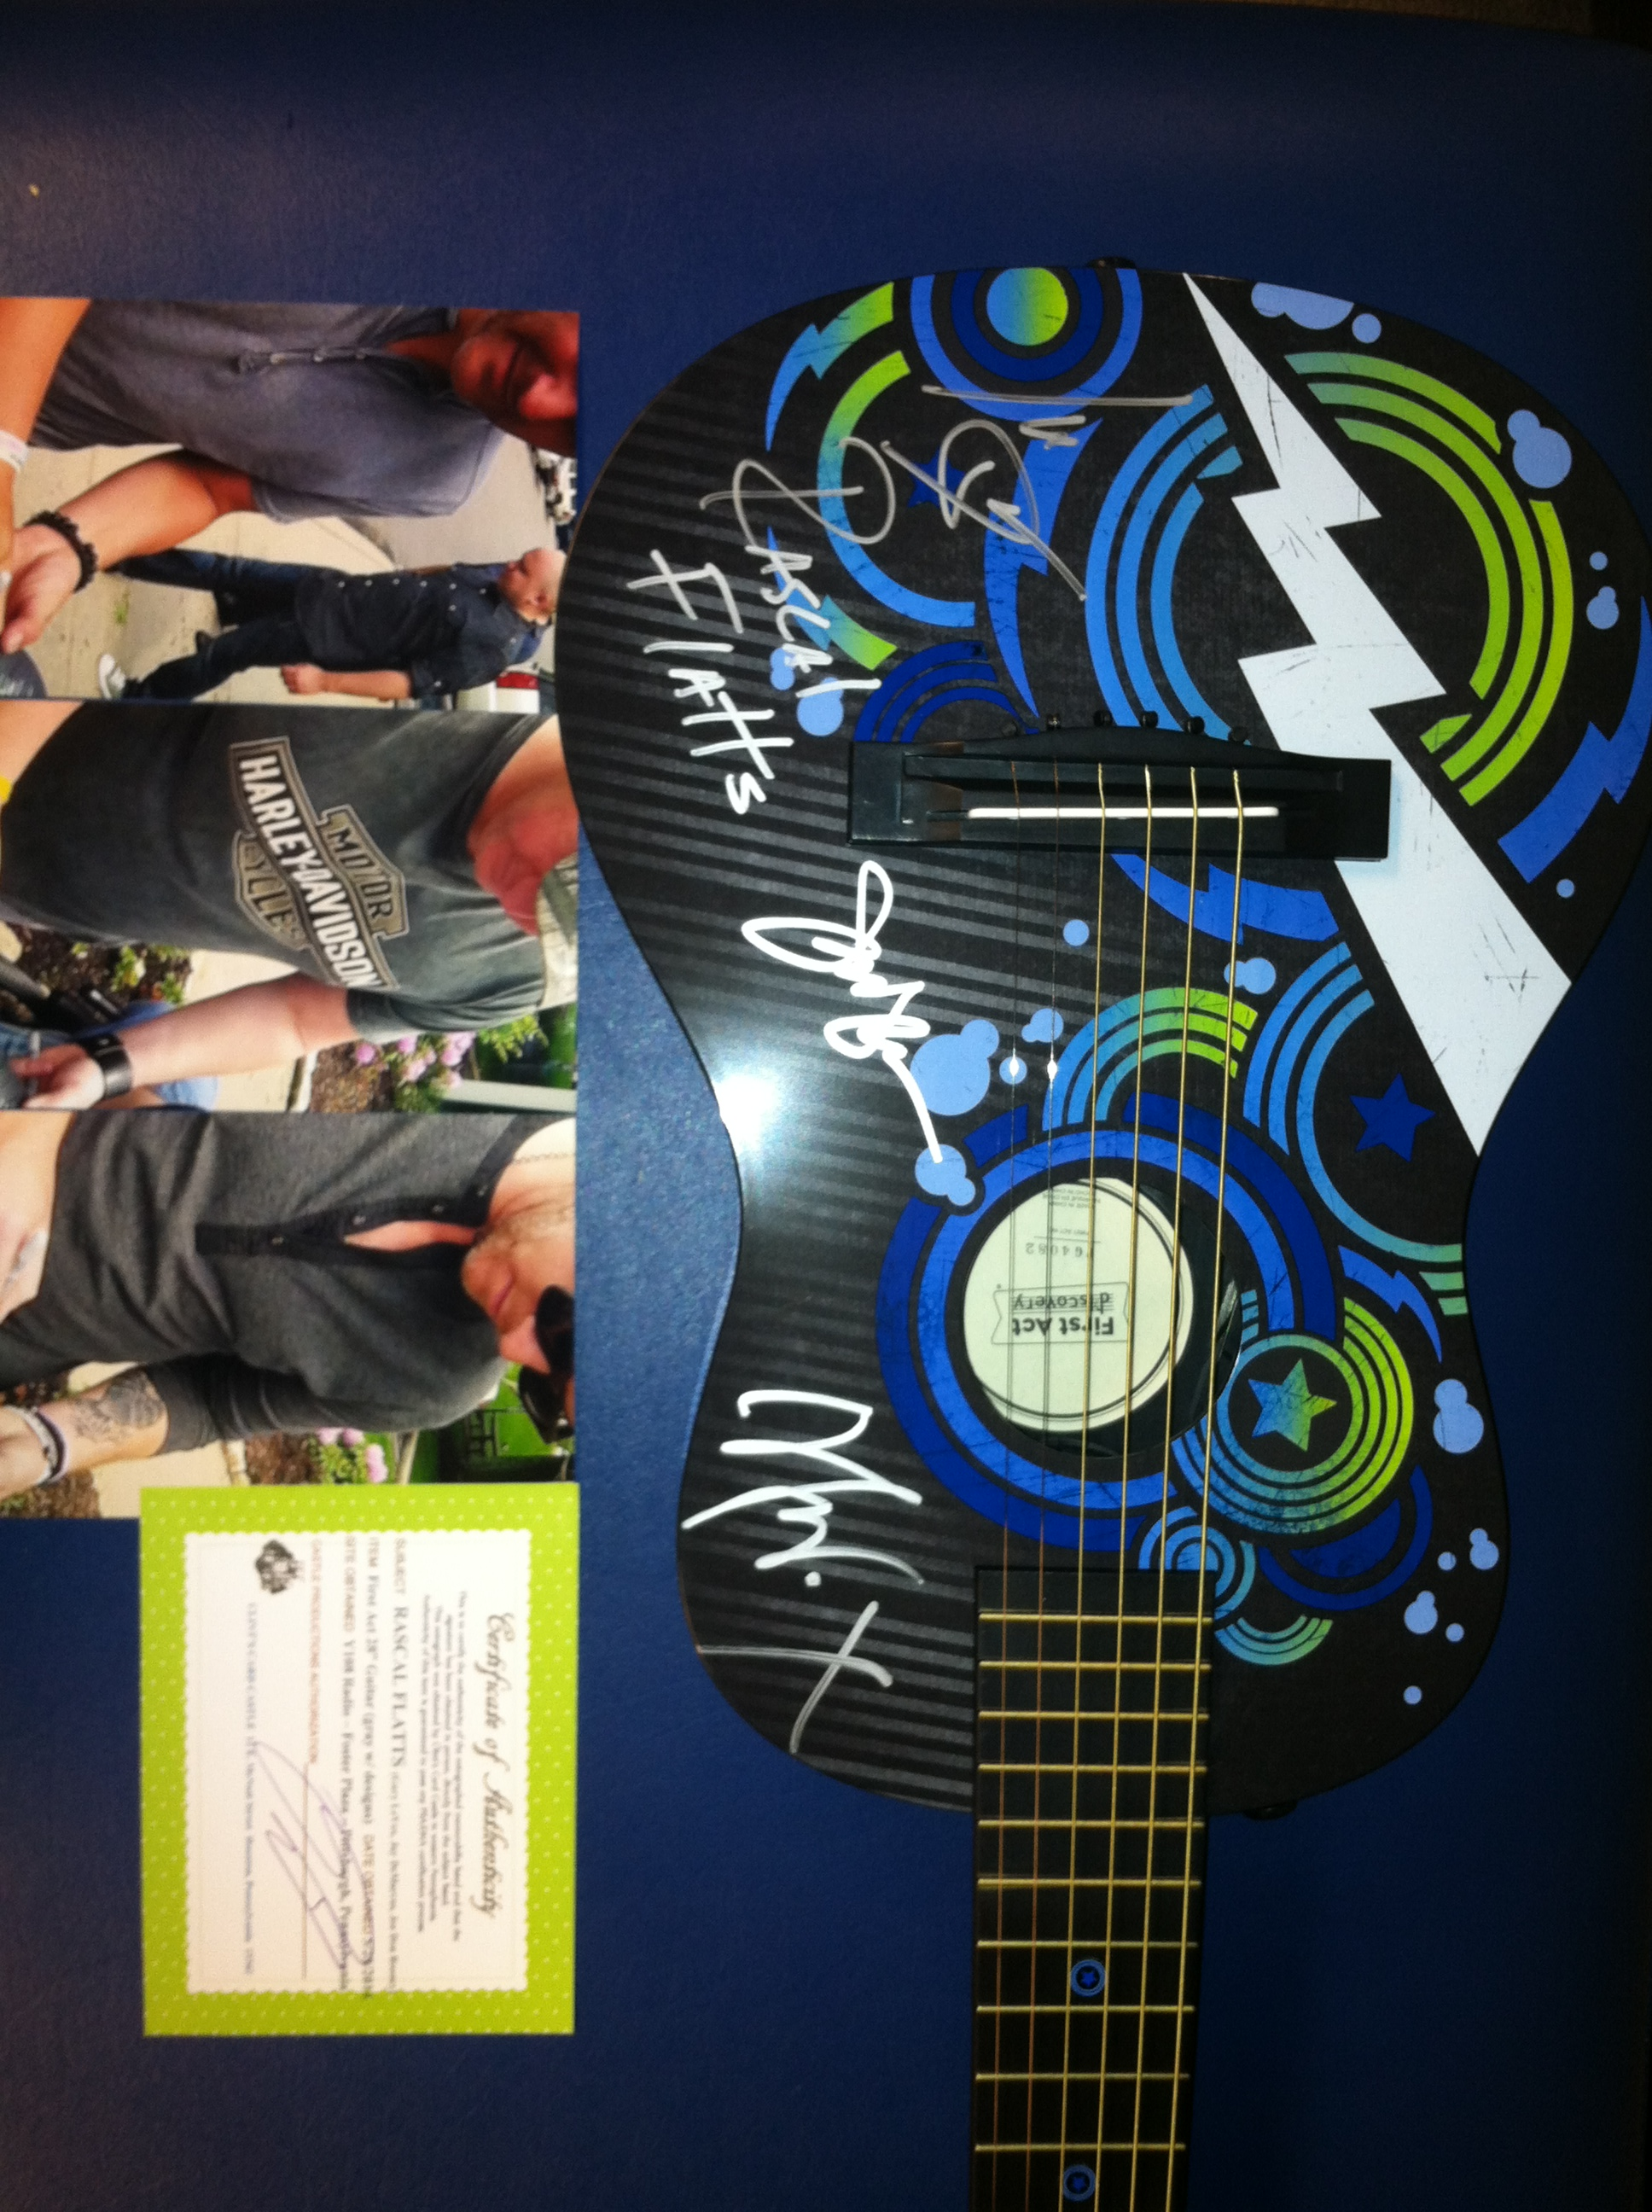 Authentic Autographed Rascal Flatts Guitar